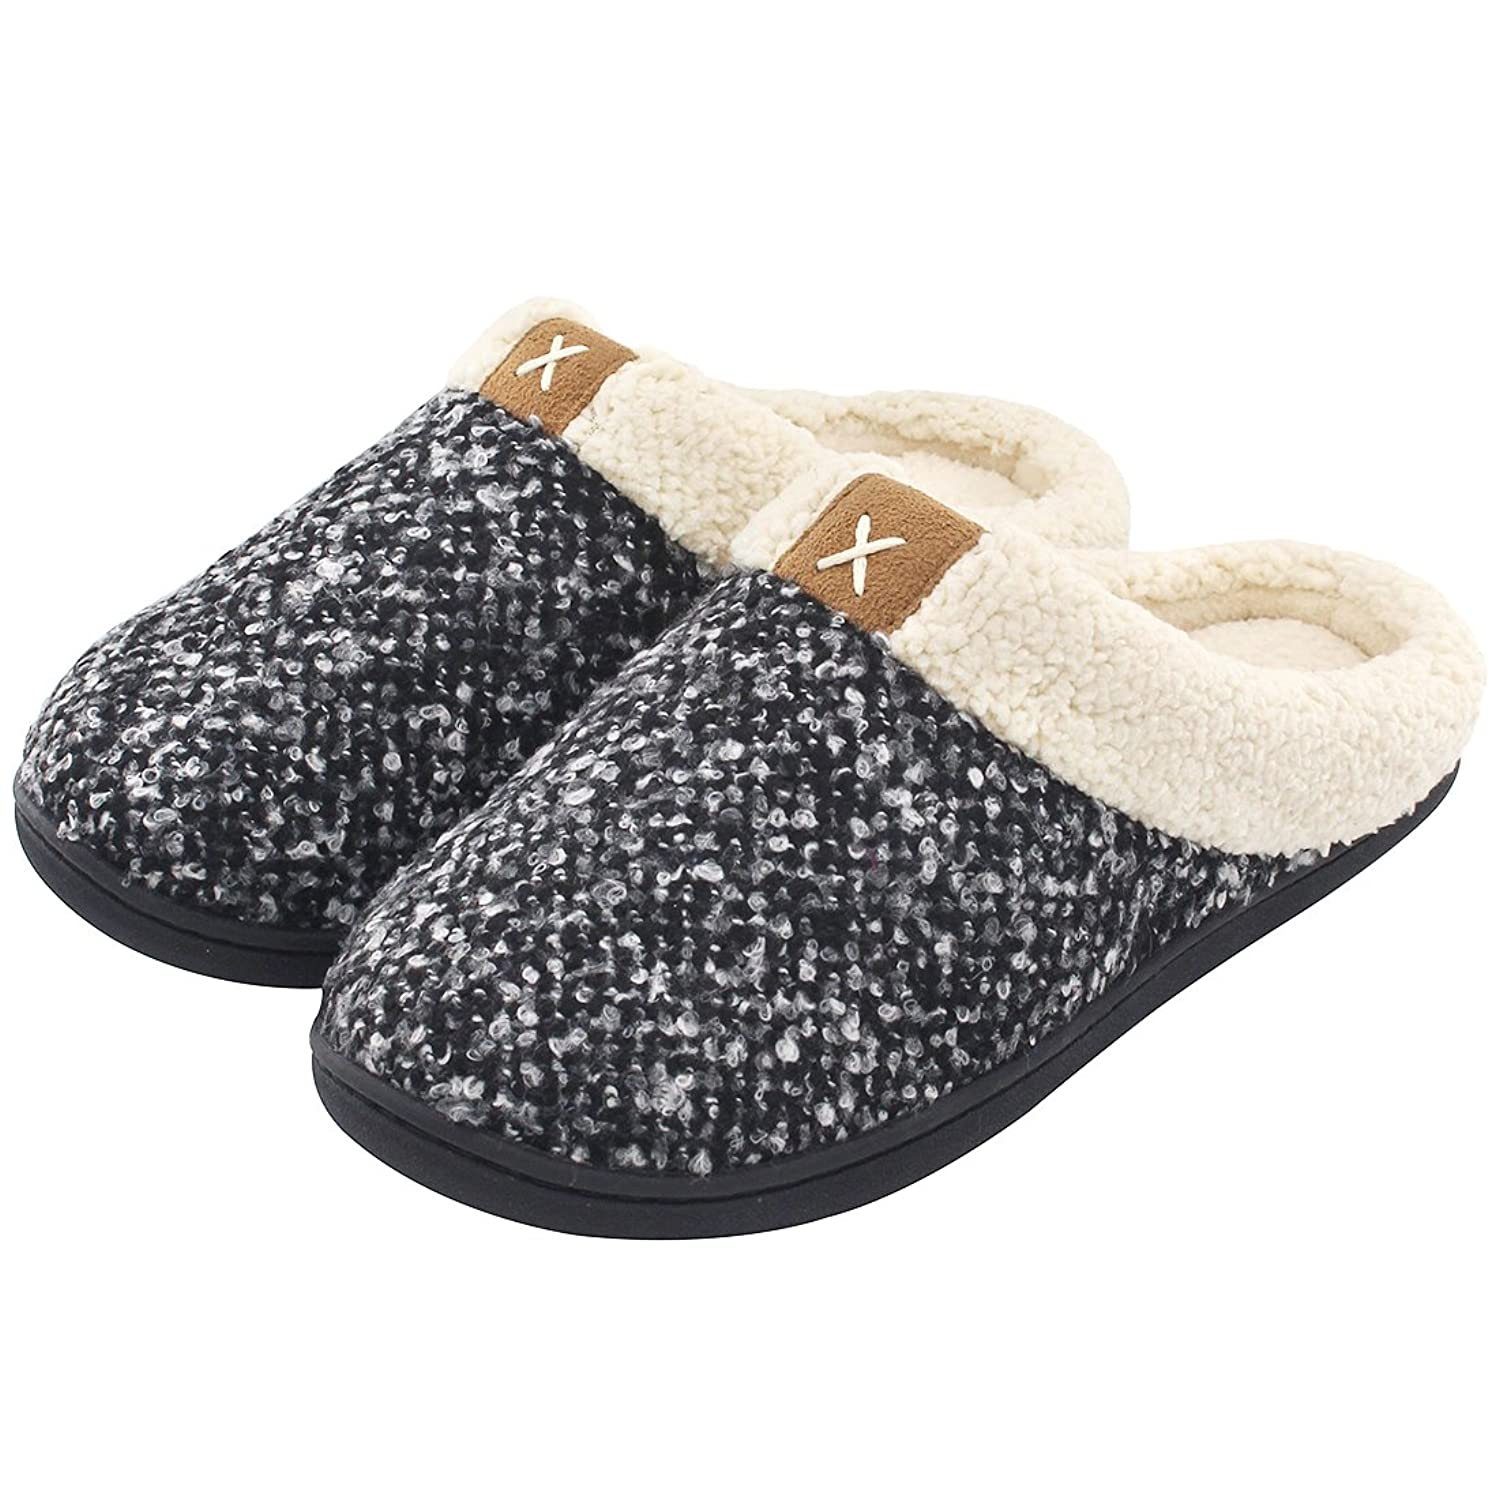 ULTRAIDEAS Women's Comfort Memory Foam Slippers Wool-Like Plush Fleece  Lined House Shoes w/